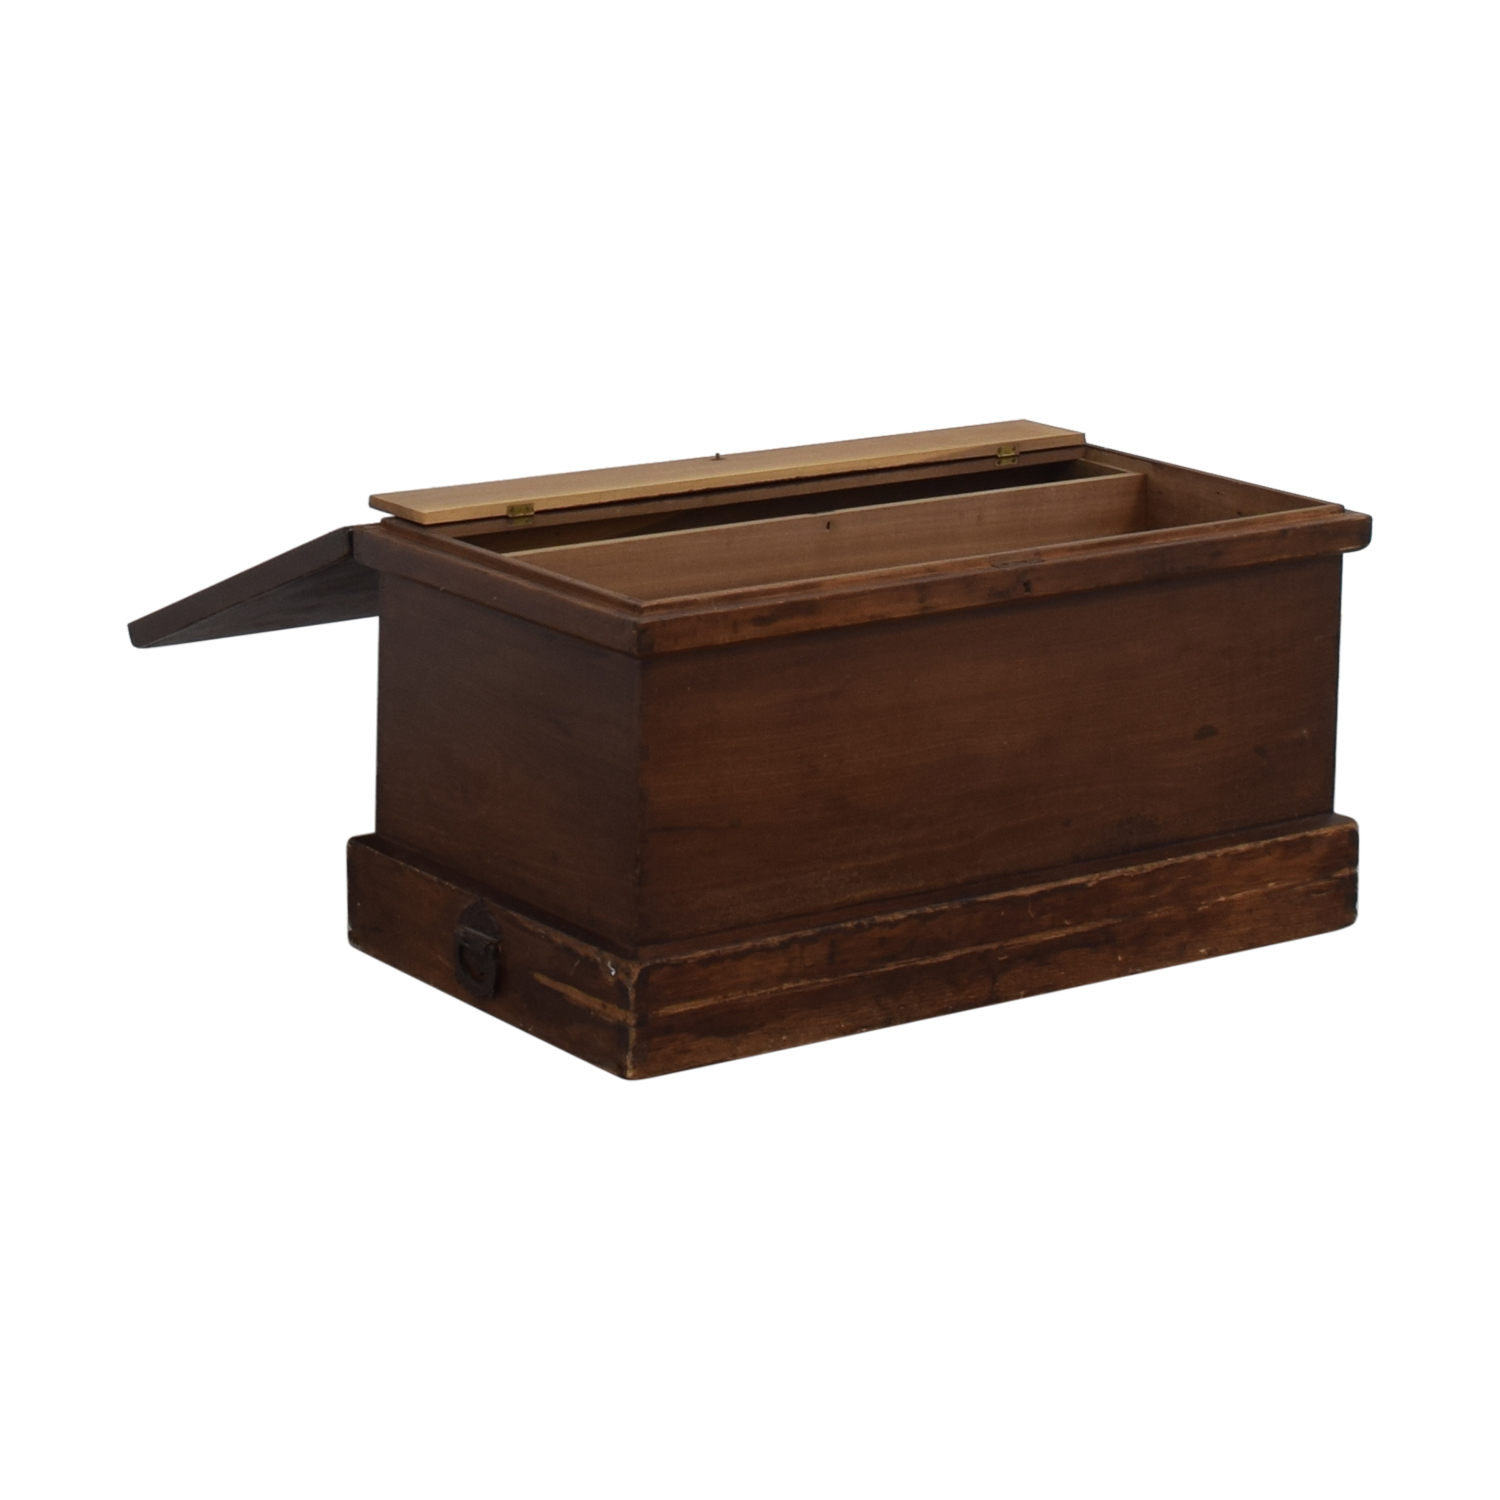 Rustic Decorative Chest Trunks